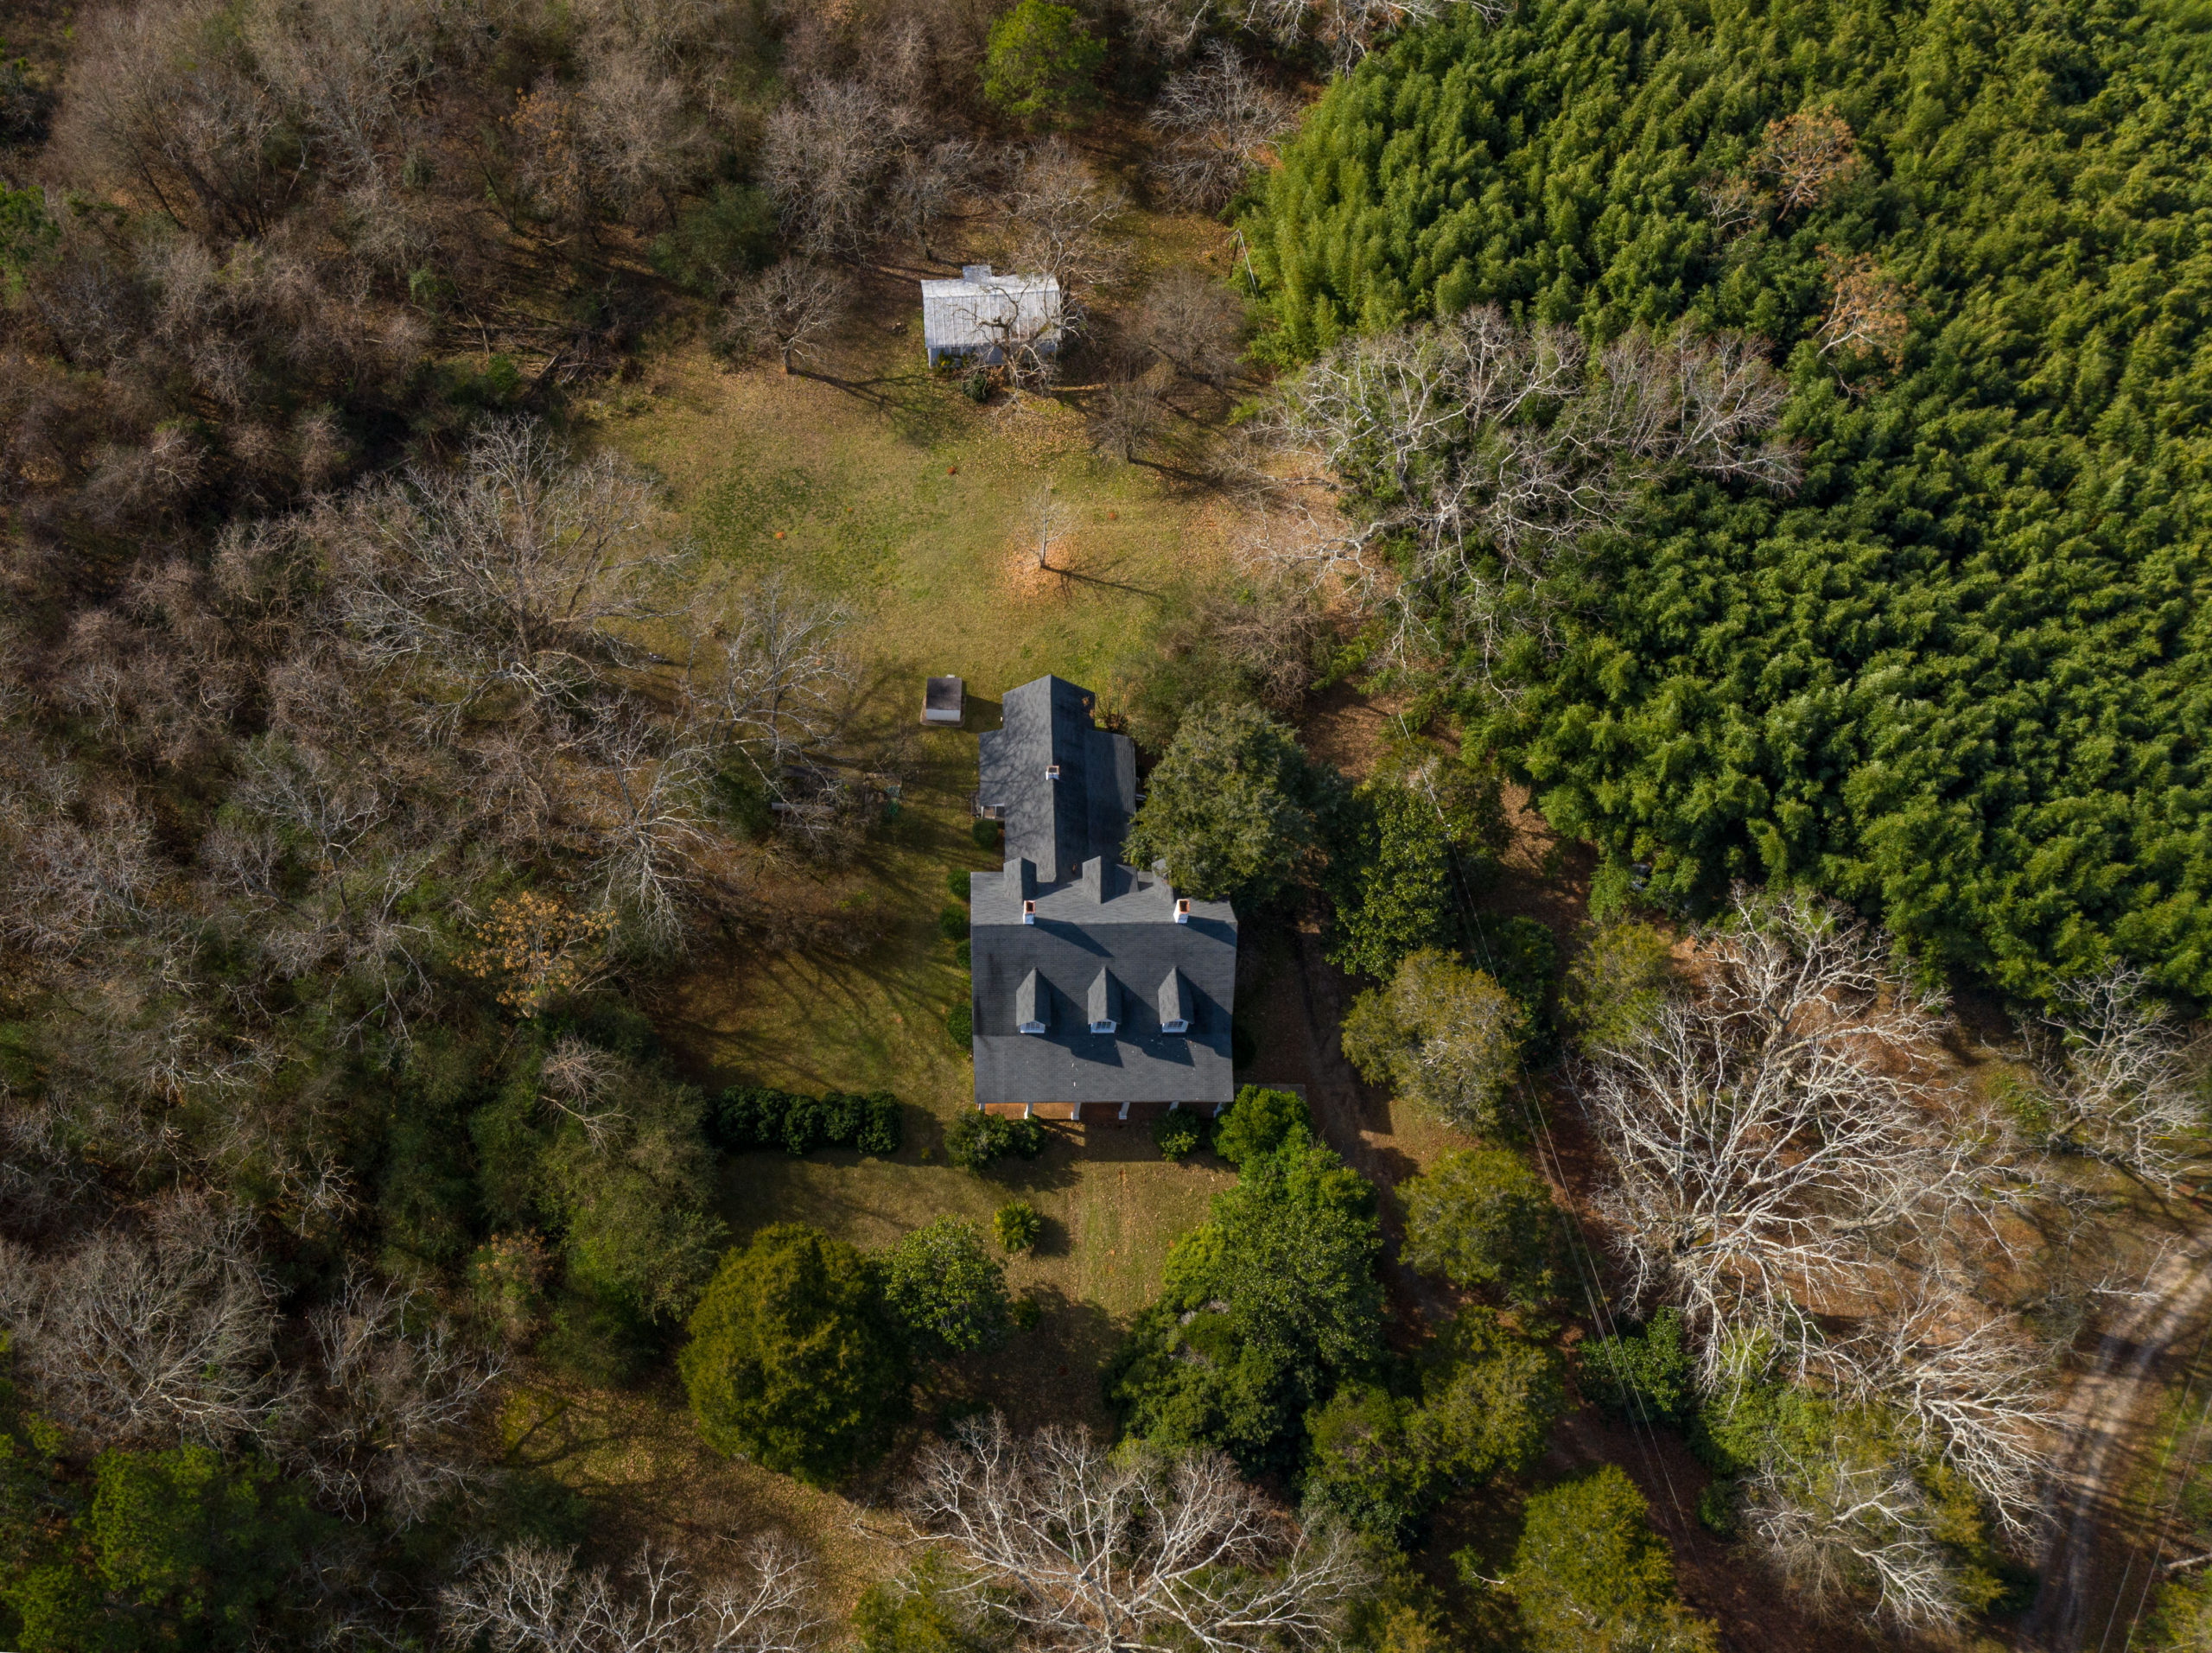 Mid 1800s home on 80 acres in Oconee County